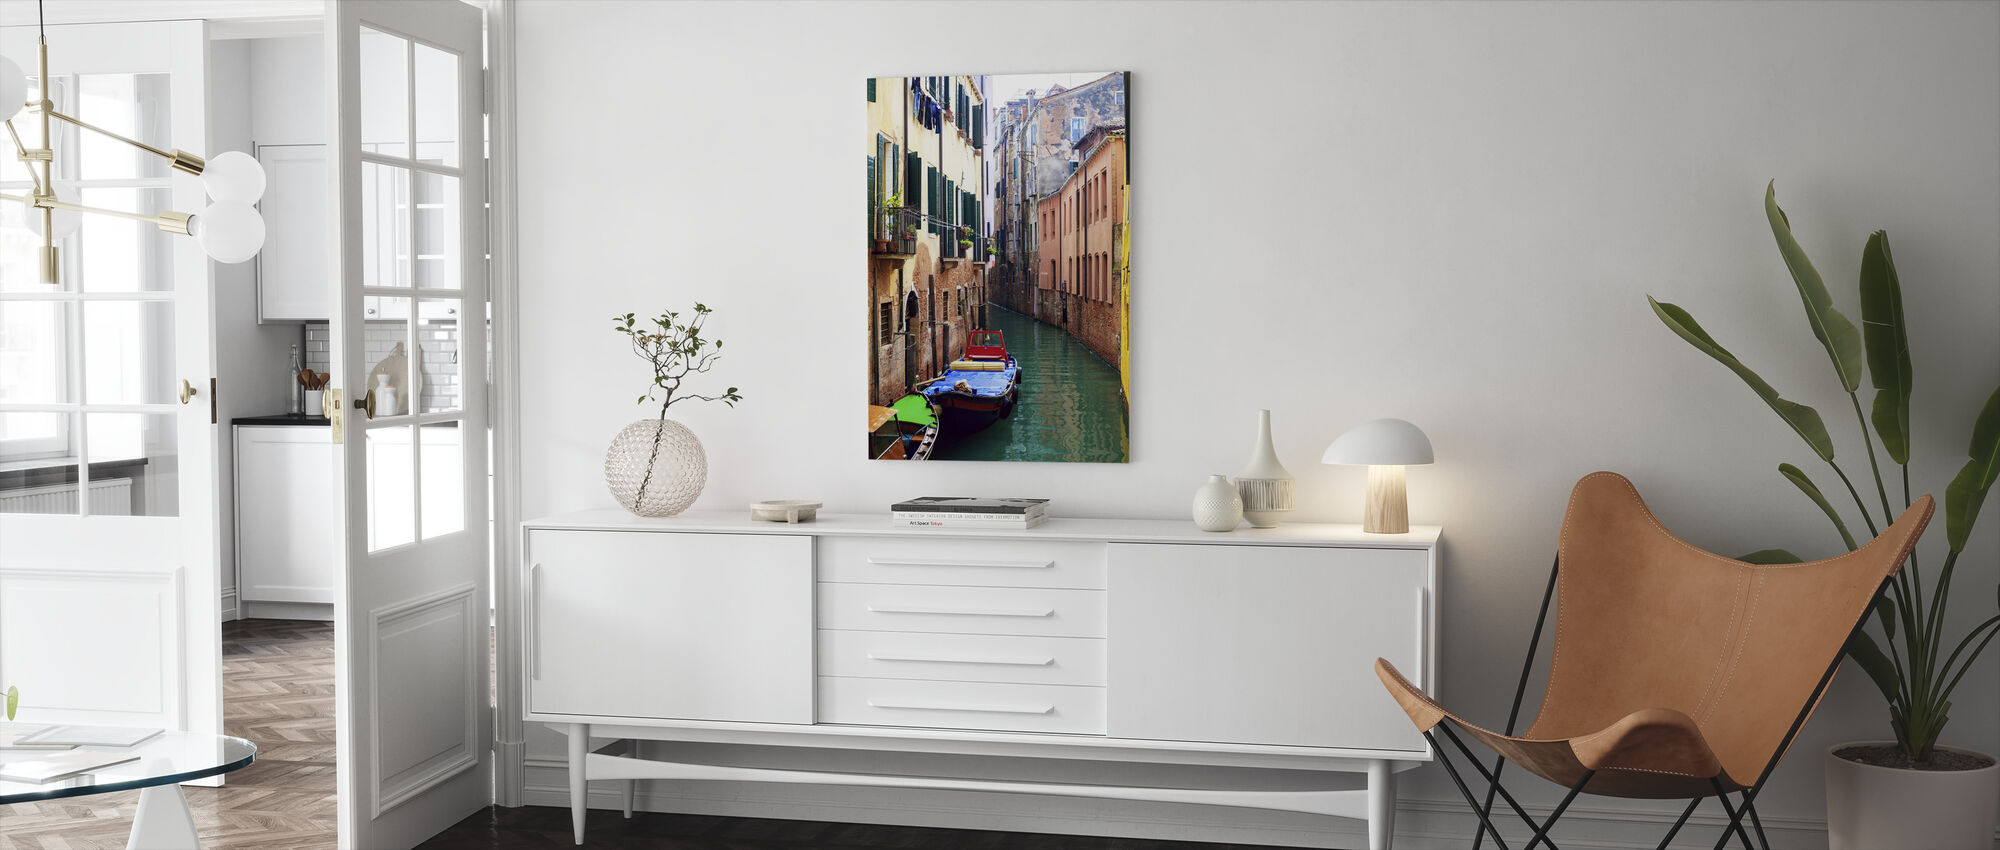 Coloured Boats Moored in Back Street Canal - Canvas print - Living Room